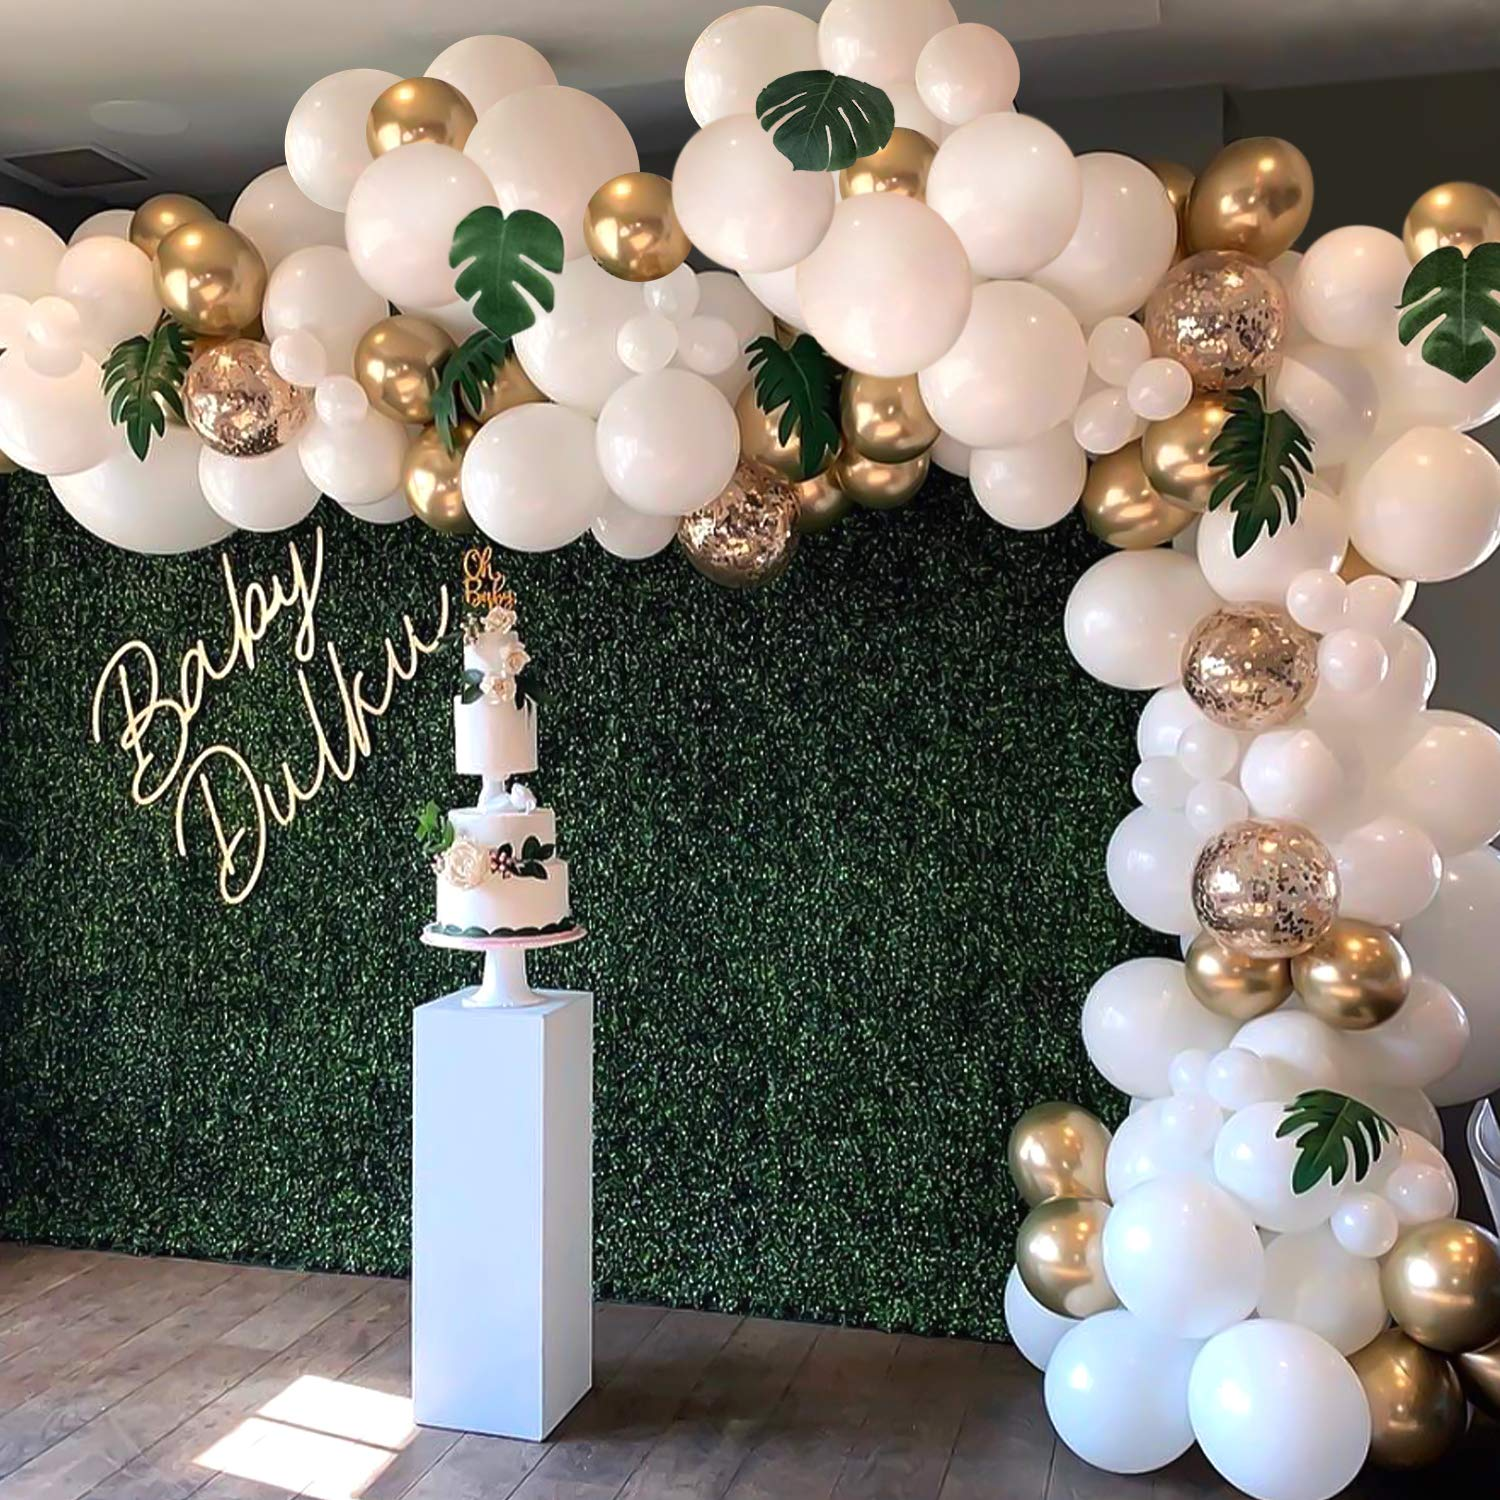 Balloon Garland Arch Kit, White Gold Confetti Balloons 101 PCS, Artificial Palm Leaves 6 PCS, Balloons for Parties, Party Wedding Birthday Balloons Decorations, Baby Shower Decorations for Girl Boy by DREAMWELL